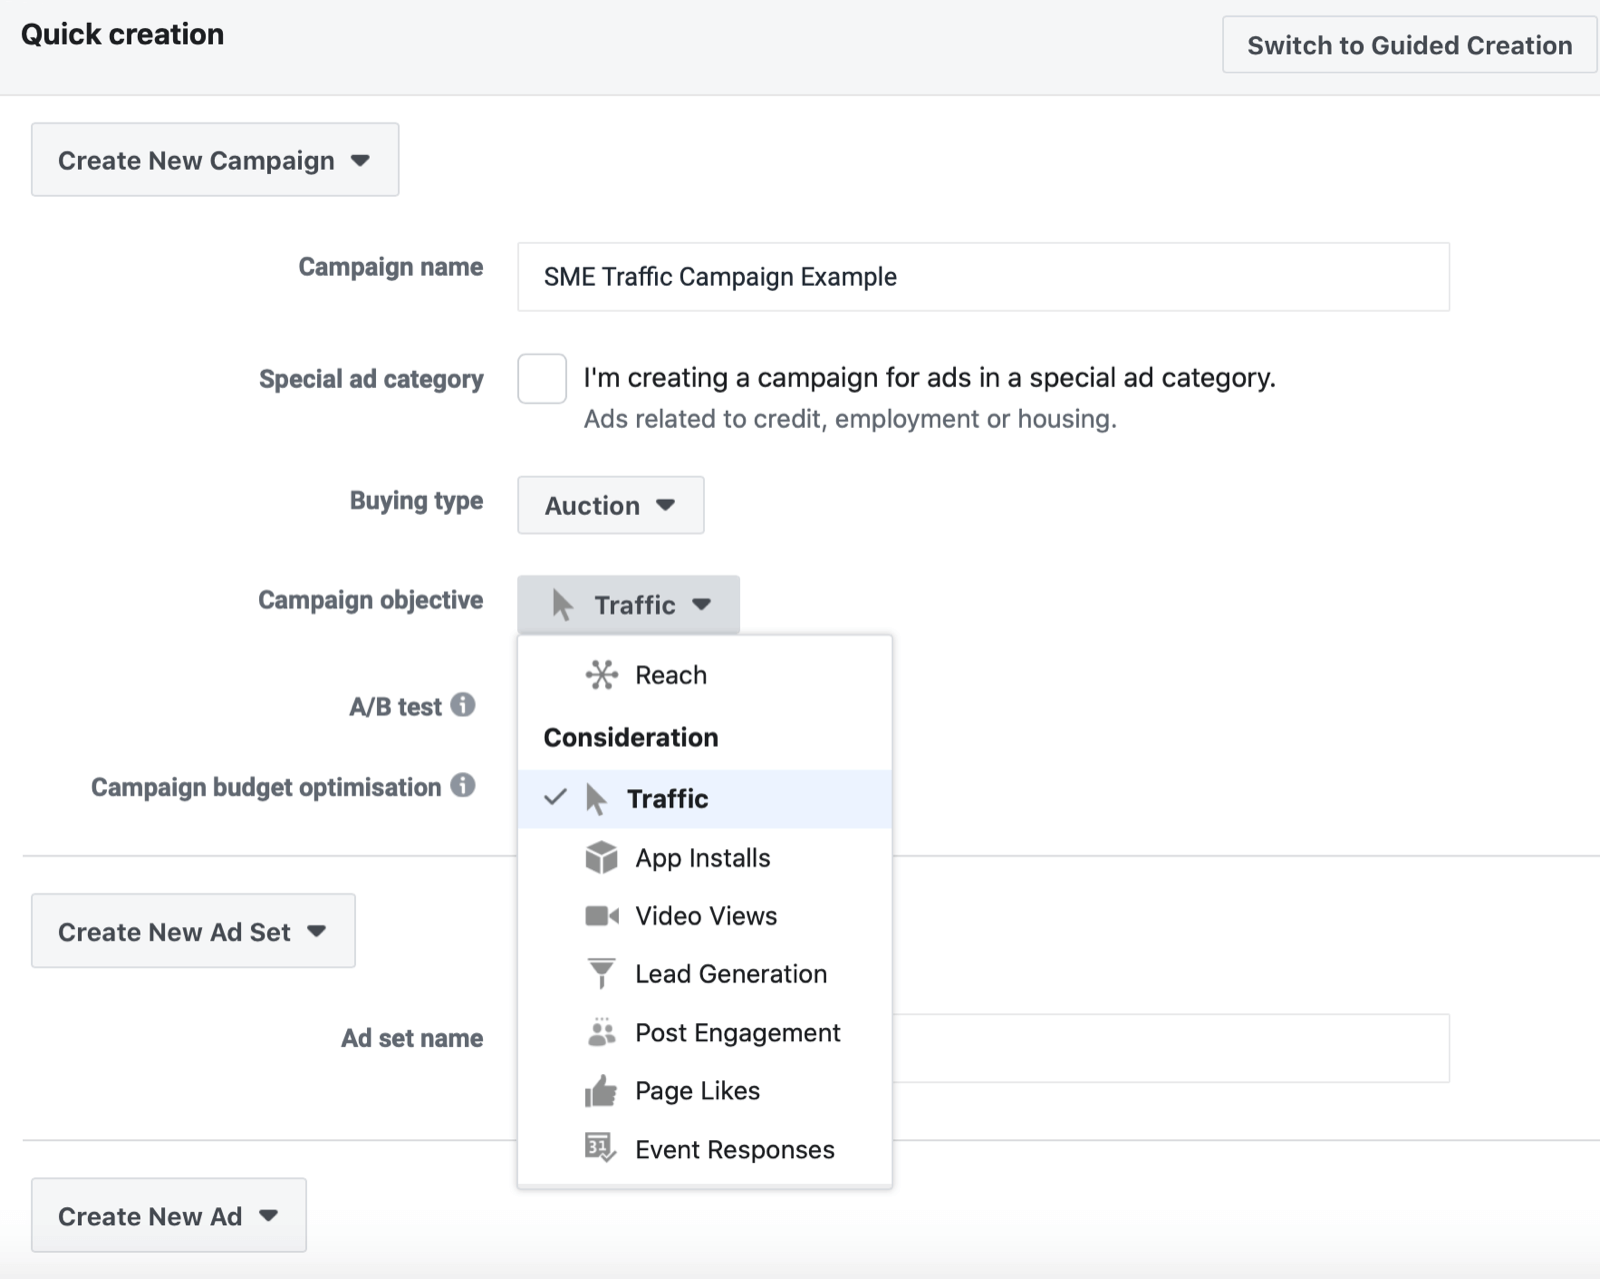 select Traffic as Facebook campaign objective